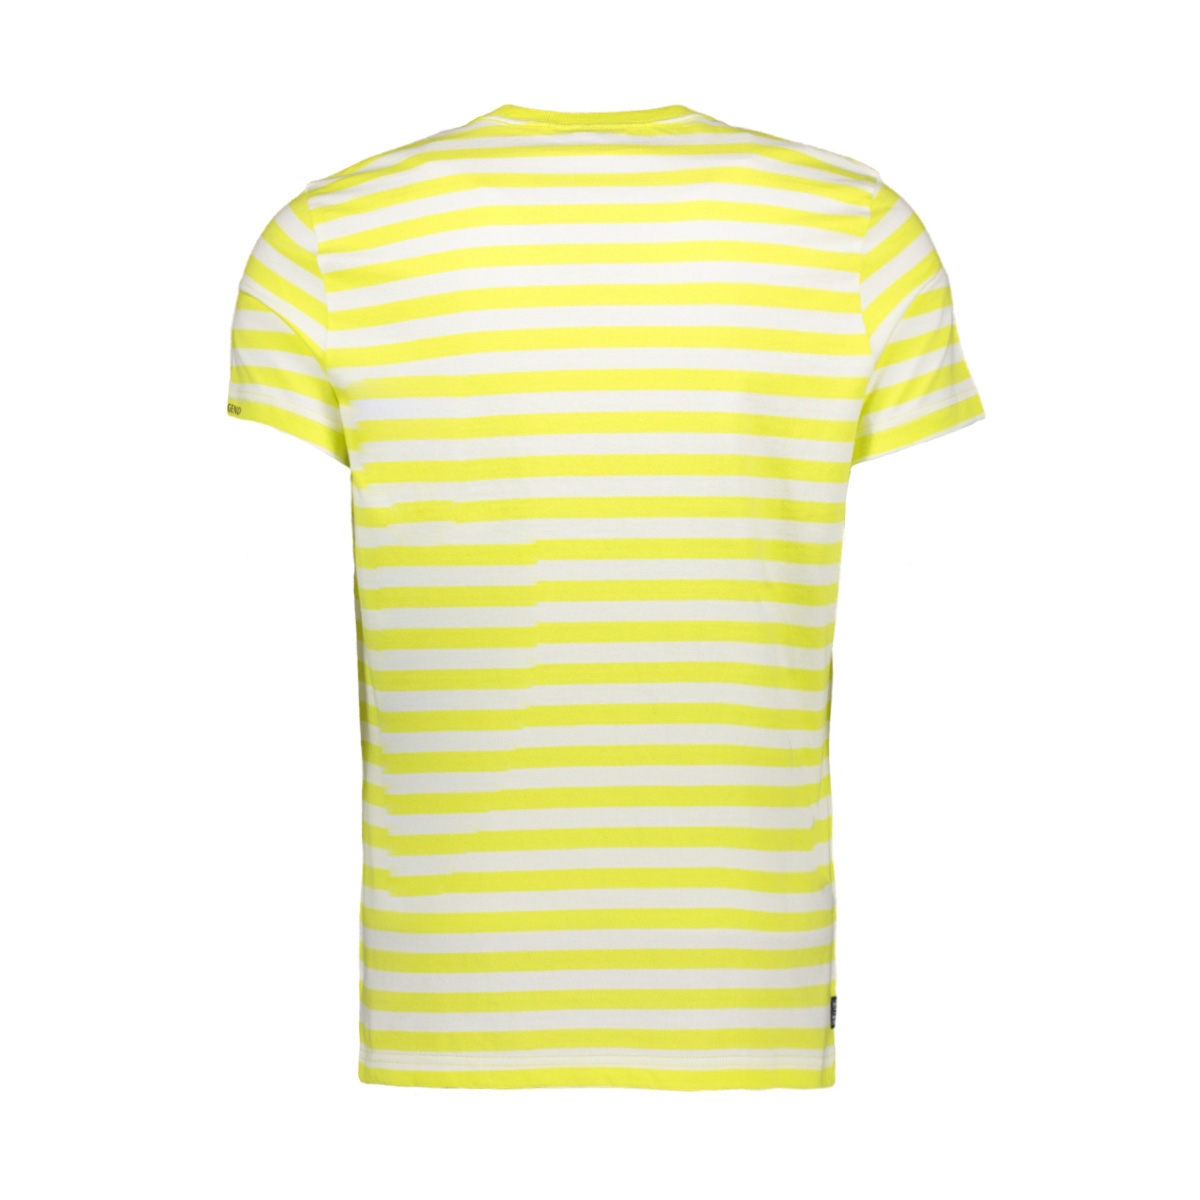 yarn dyed striped jersey t shirt ptss204582 pme legend t-shirt 1126